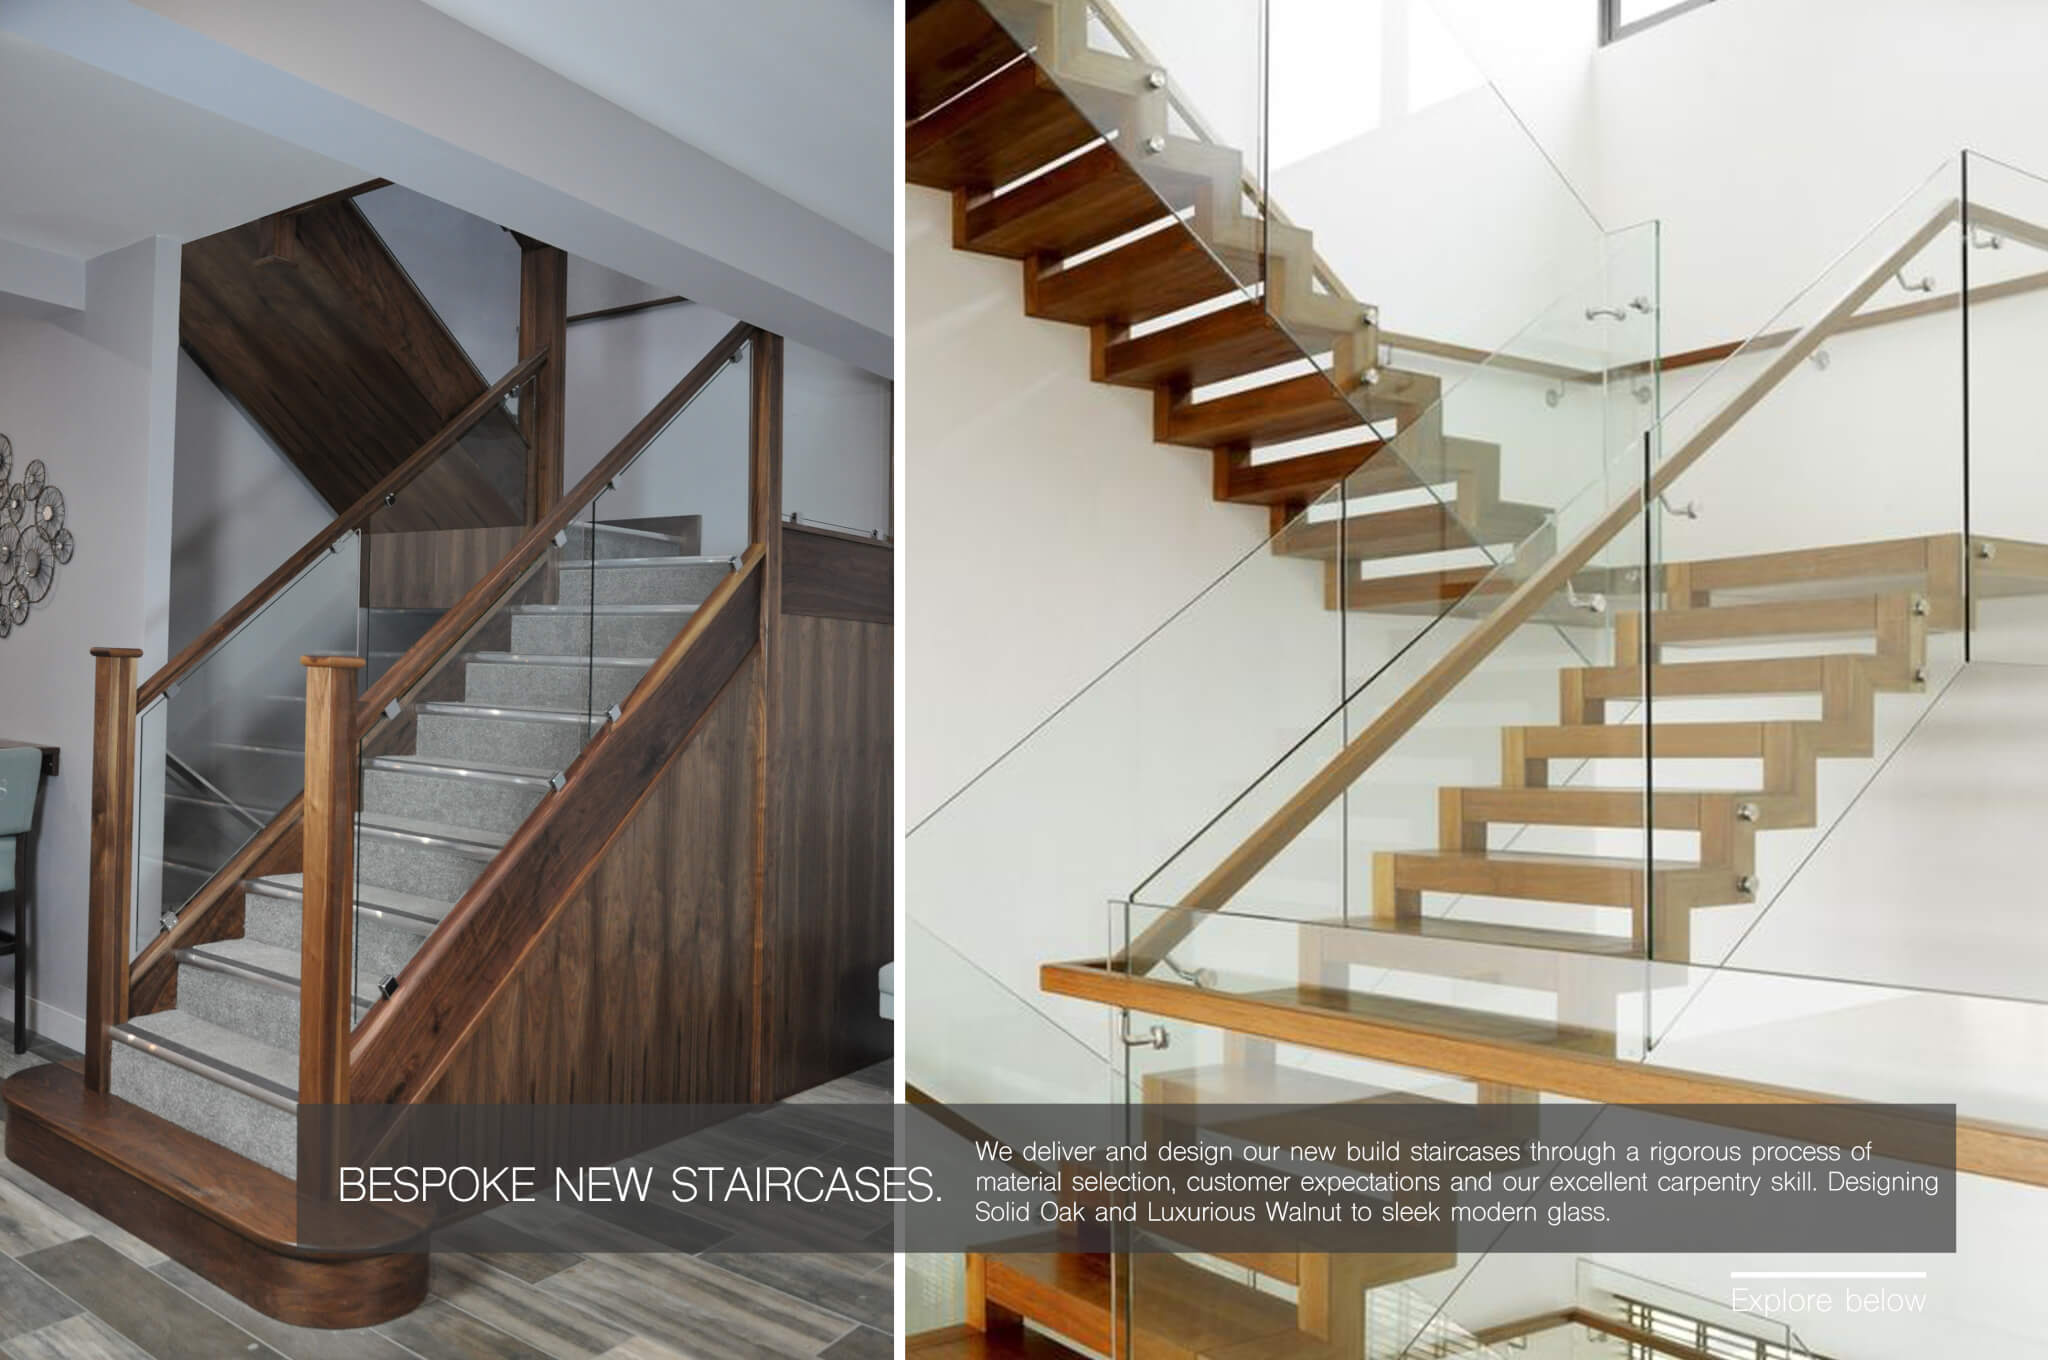 Merveilleux Thomas Ferns Bespoke Staircase Renovations